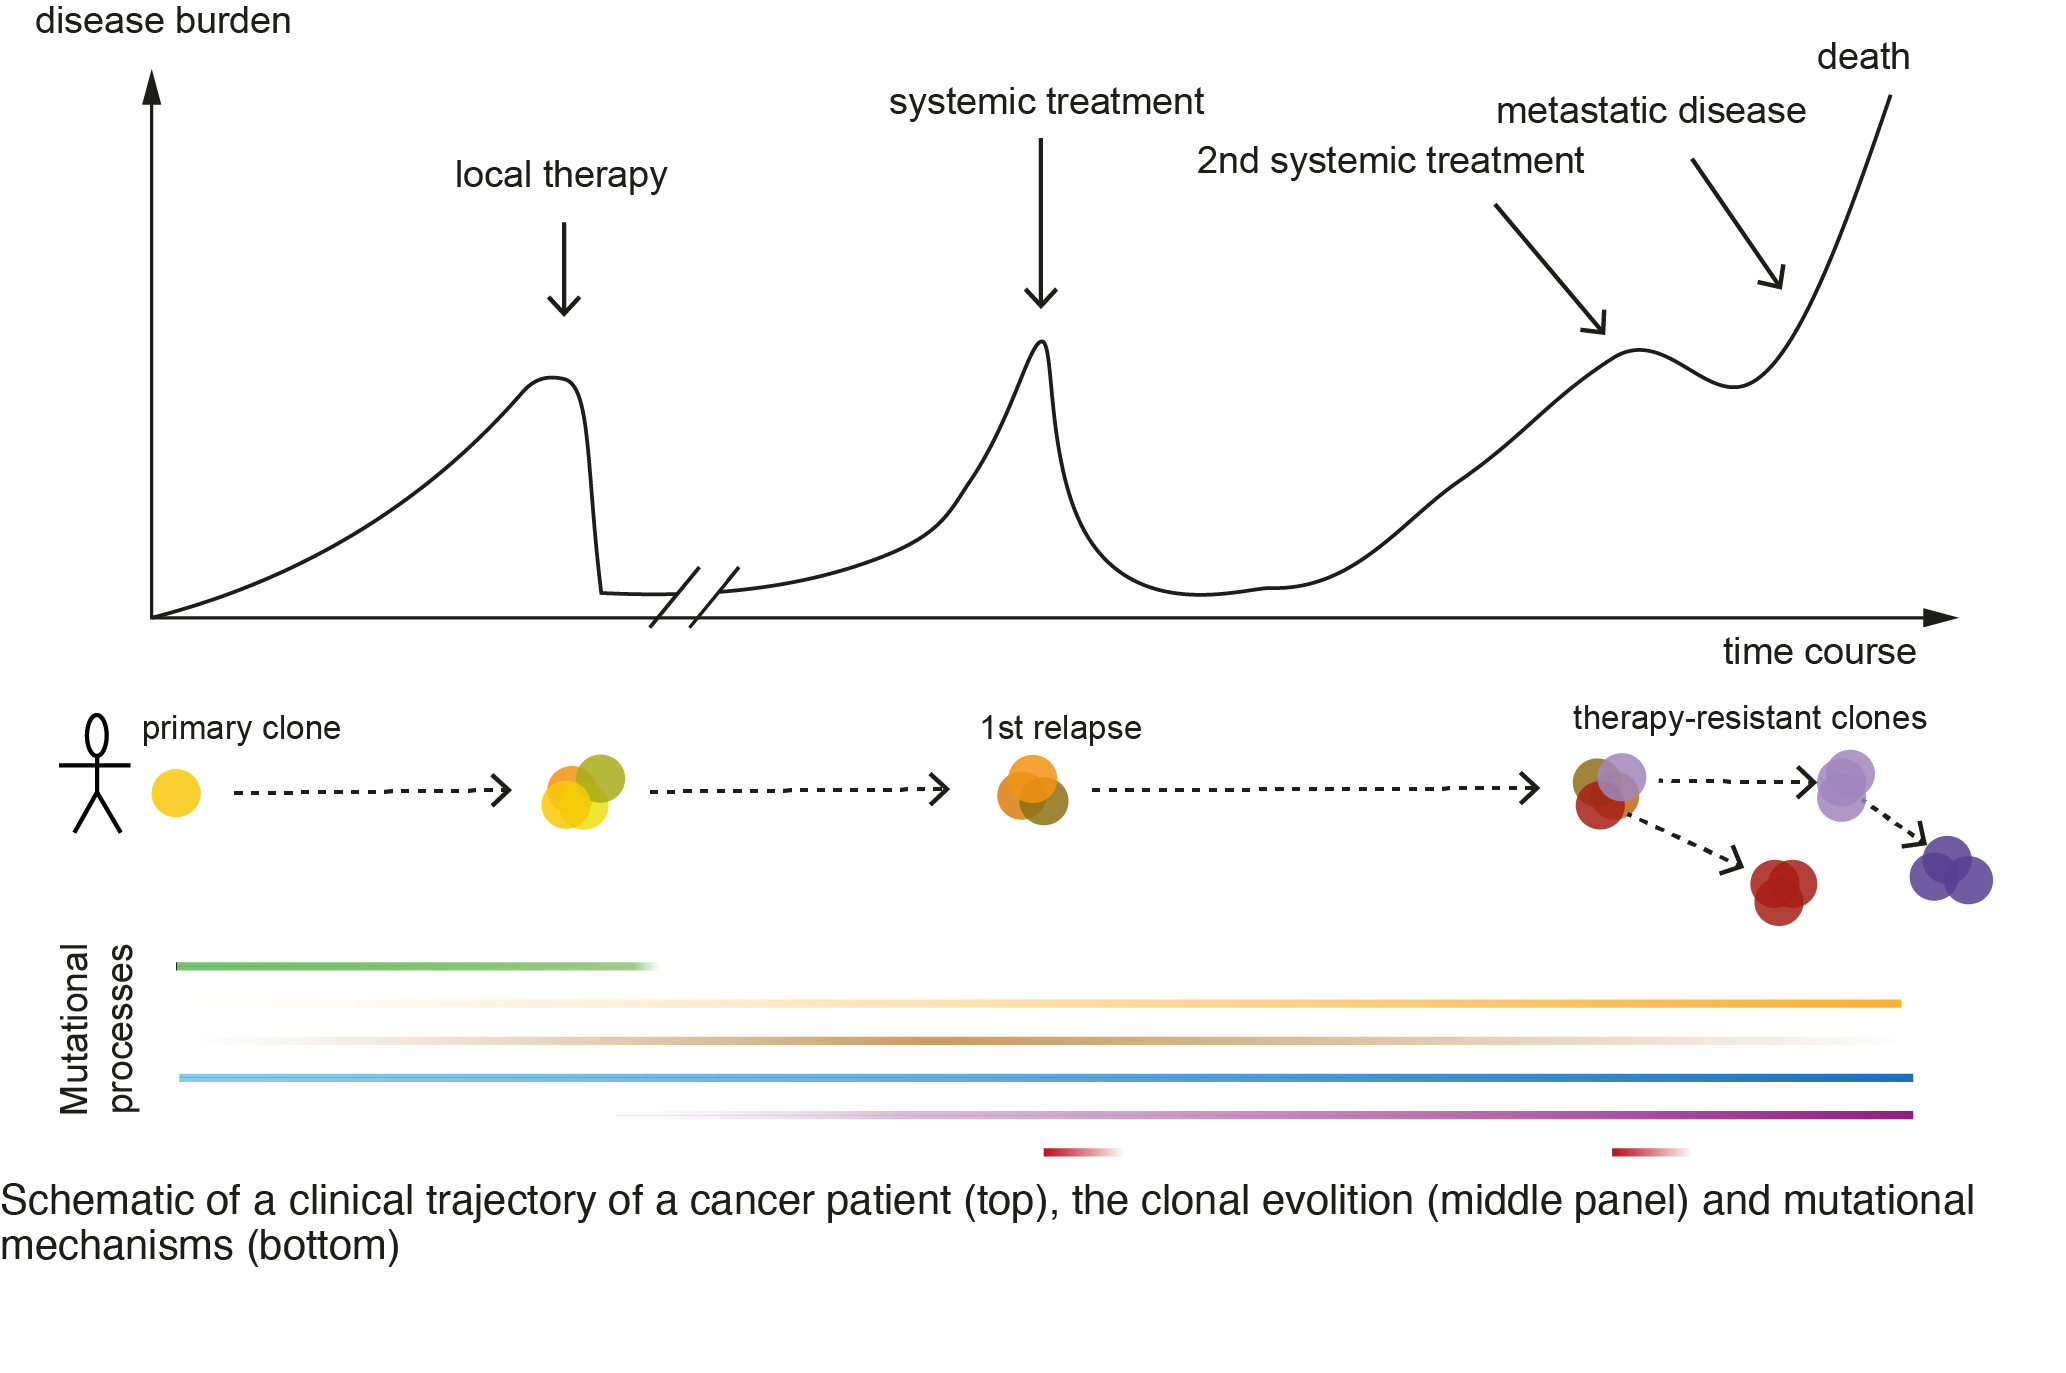 Schematic of a clinical trajectory of a cancer patient (top), the clonal evolition (middle part) and mutational mechanisms (bottom). For detailed description please contact communication@bric.ku.dk